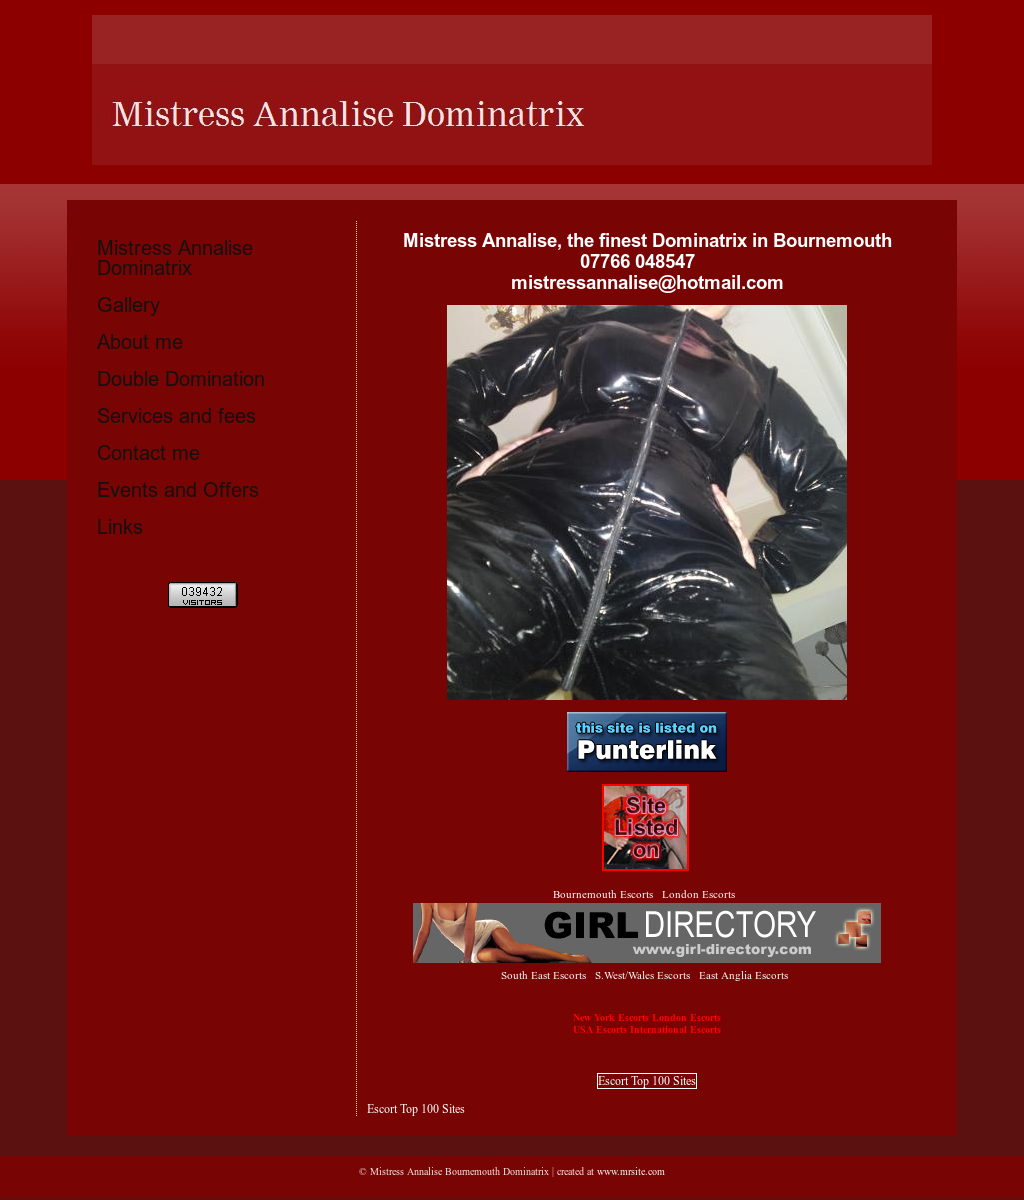 Dominatrix leather mistress recollect